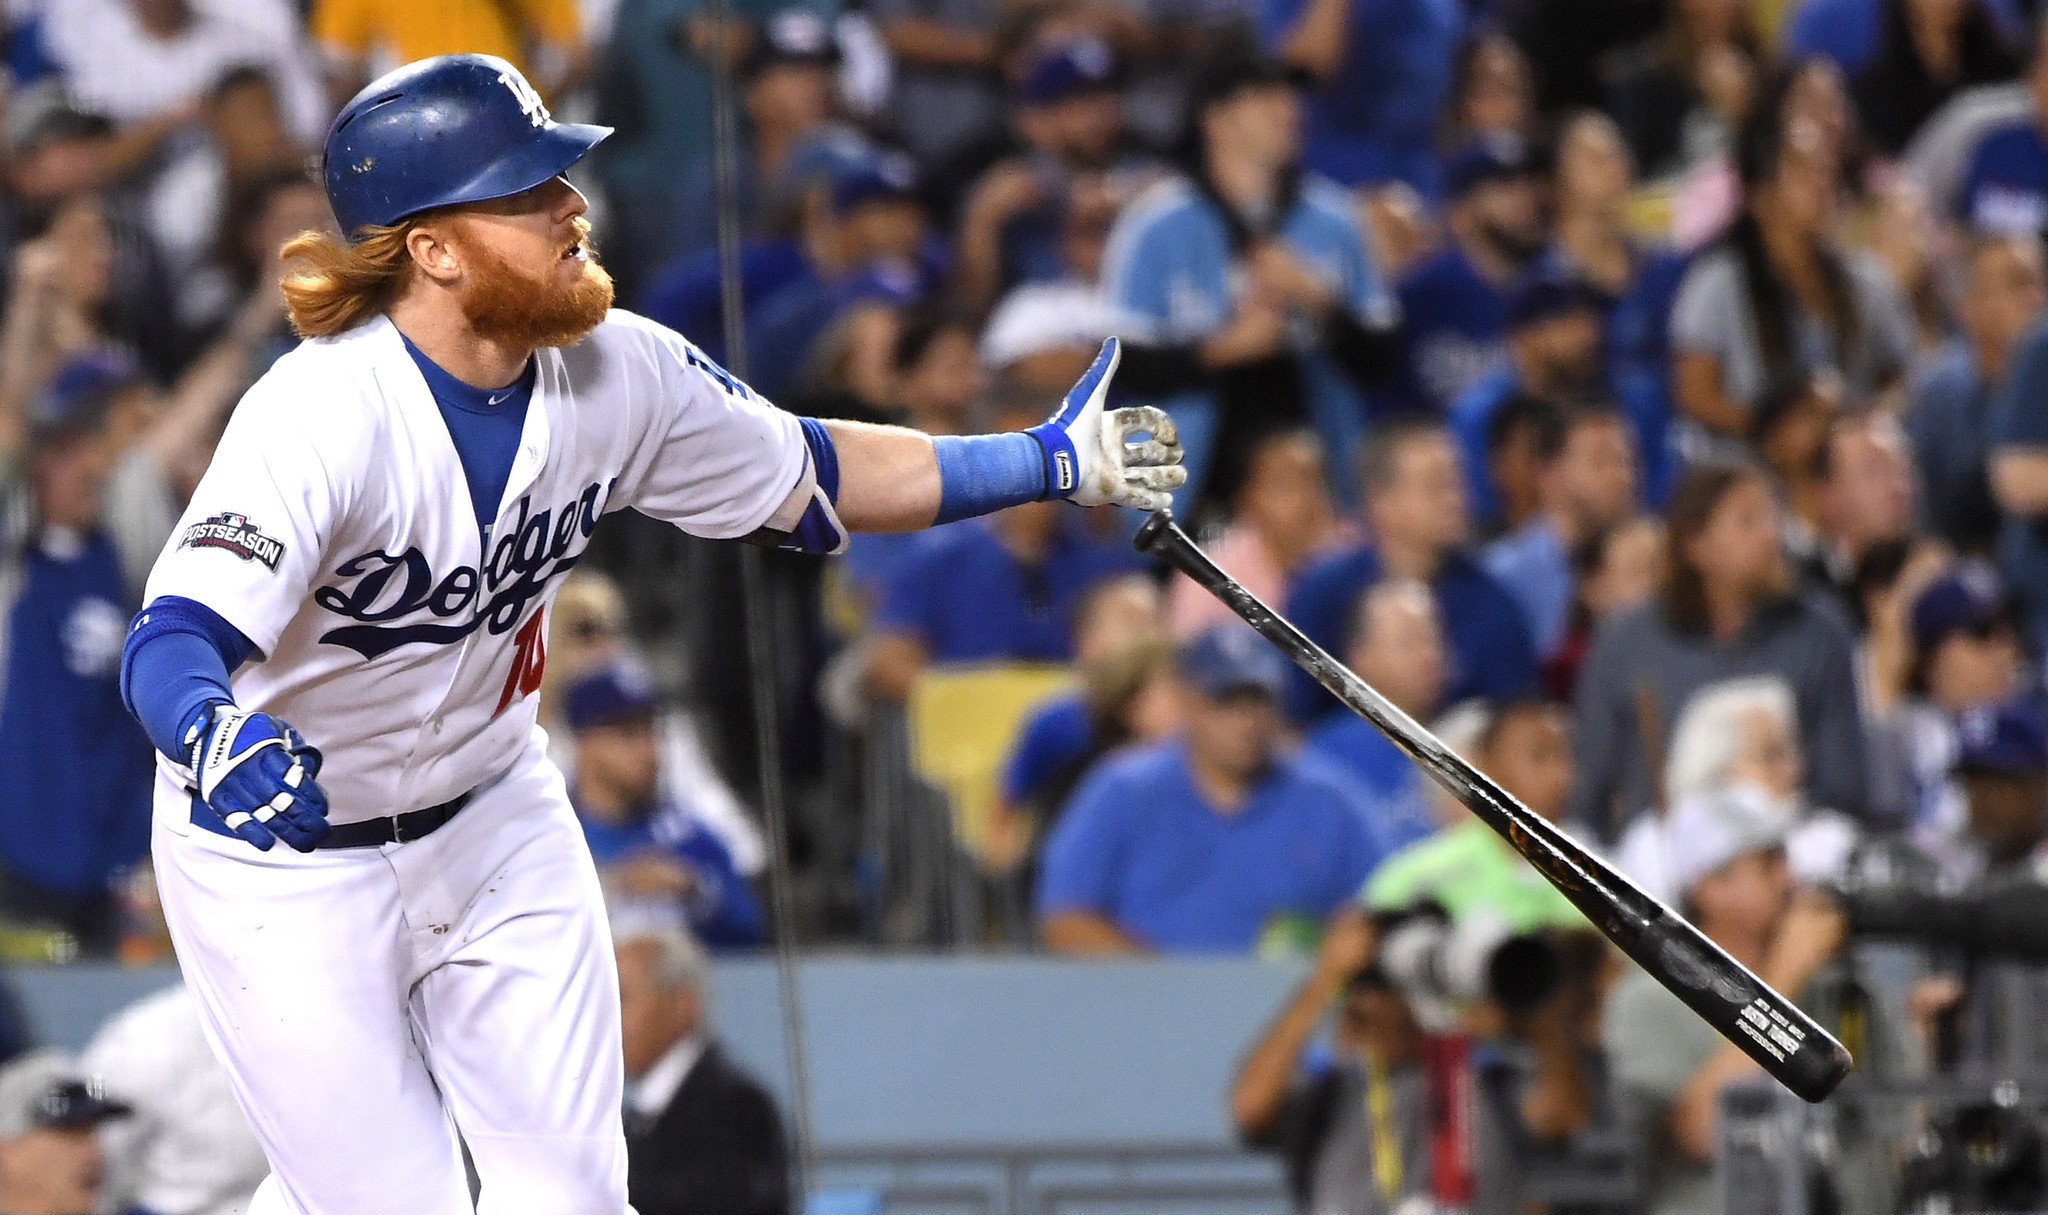 Justin Turner: I had offers from others, but not from Angels